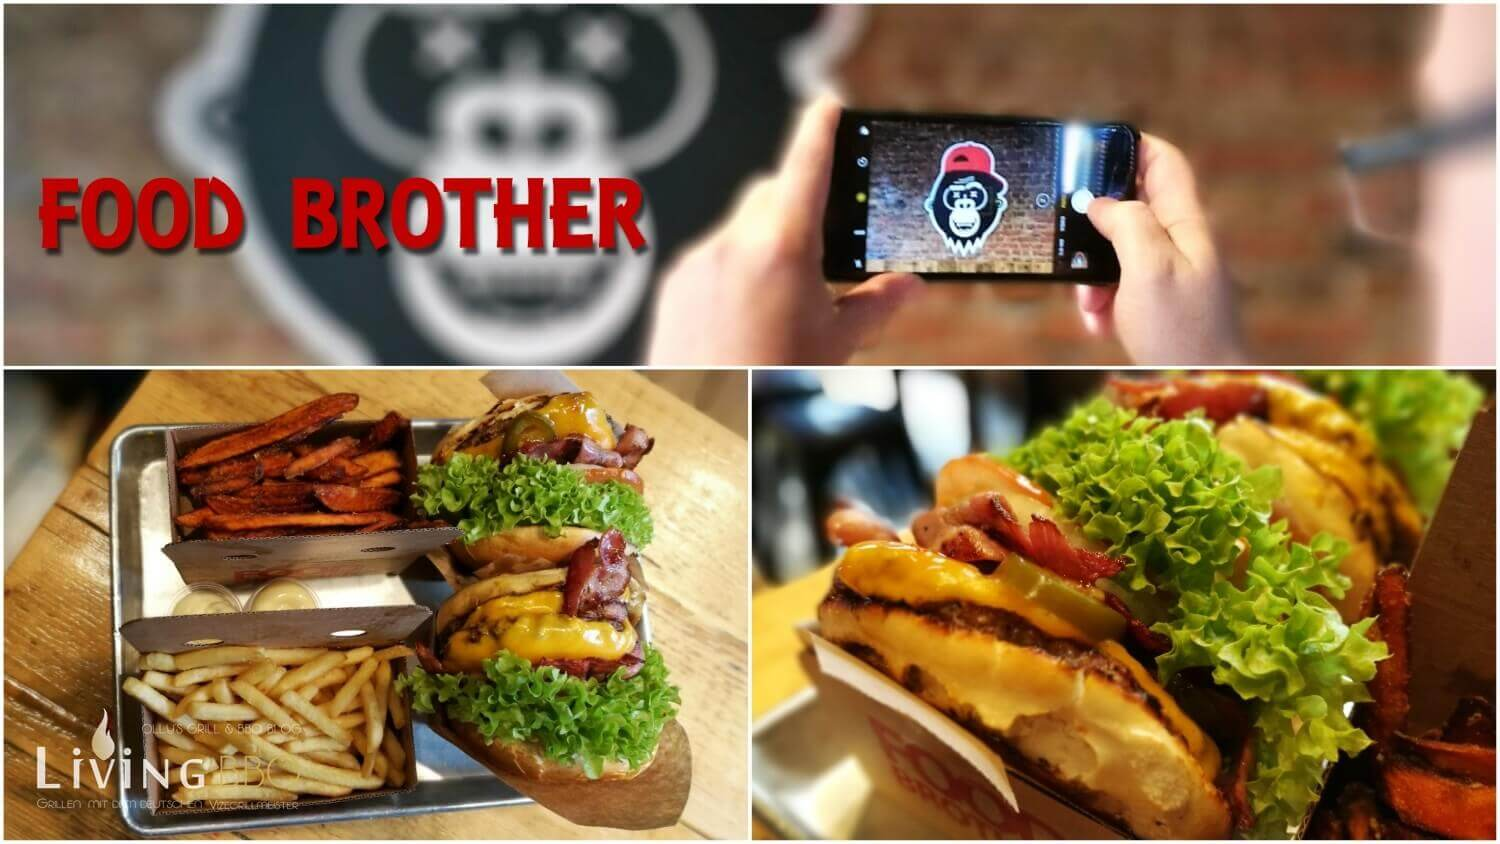 Food Brother Burger Dortmund grillrezepte_Food Brother Dortmund